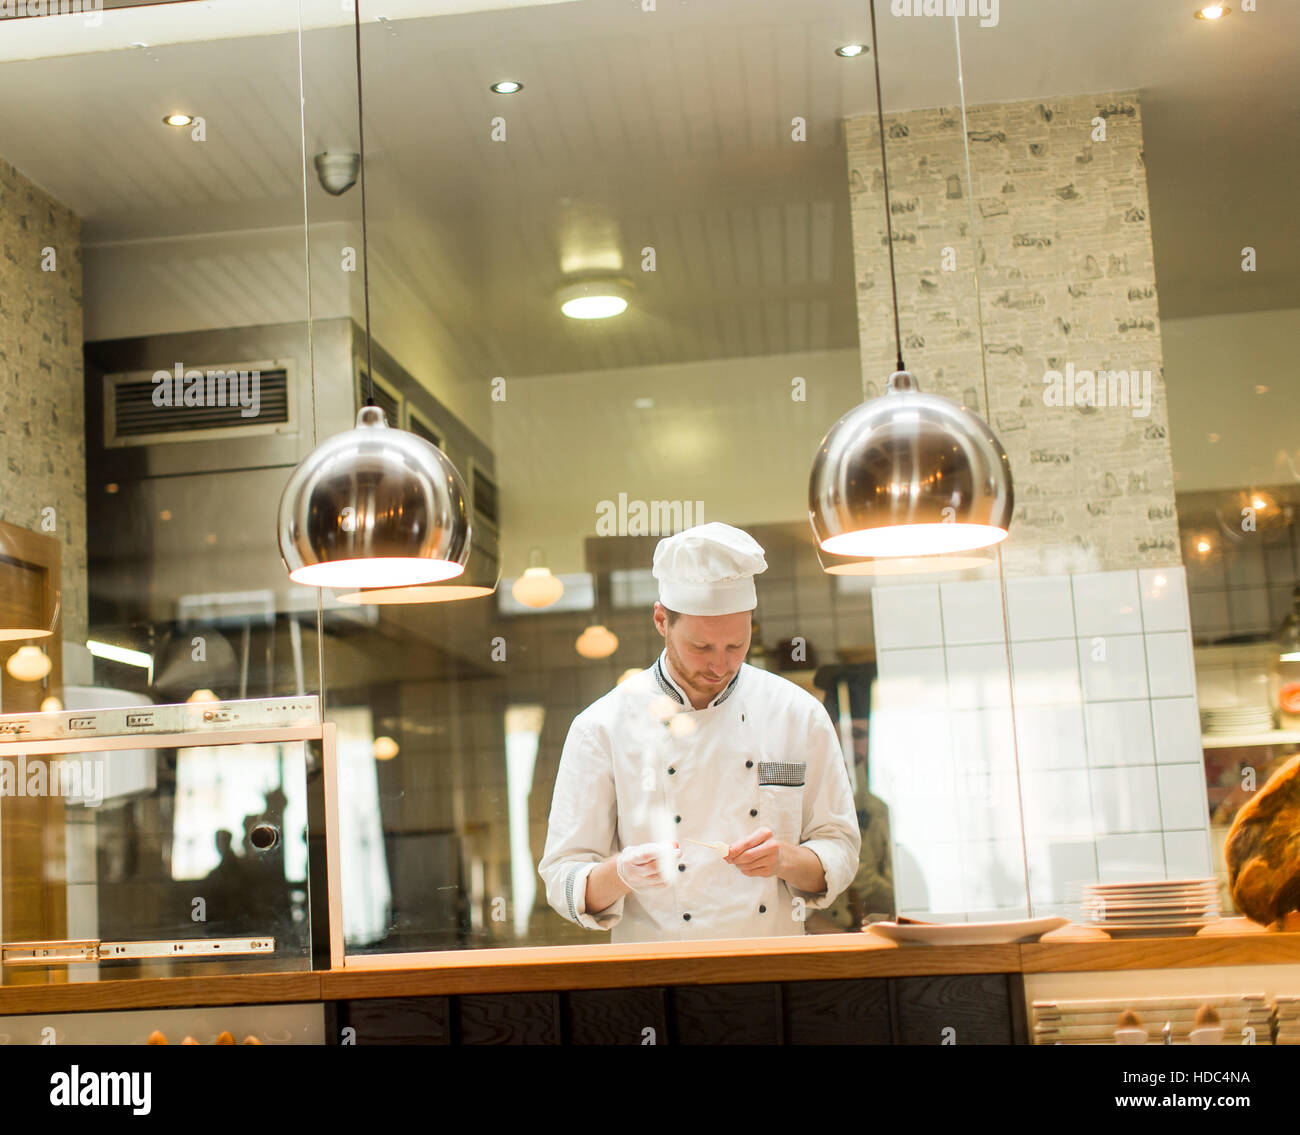 Young chef with white uniform standing at a modern kitchen in the restaurant and preparing food - Stock Image